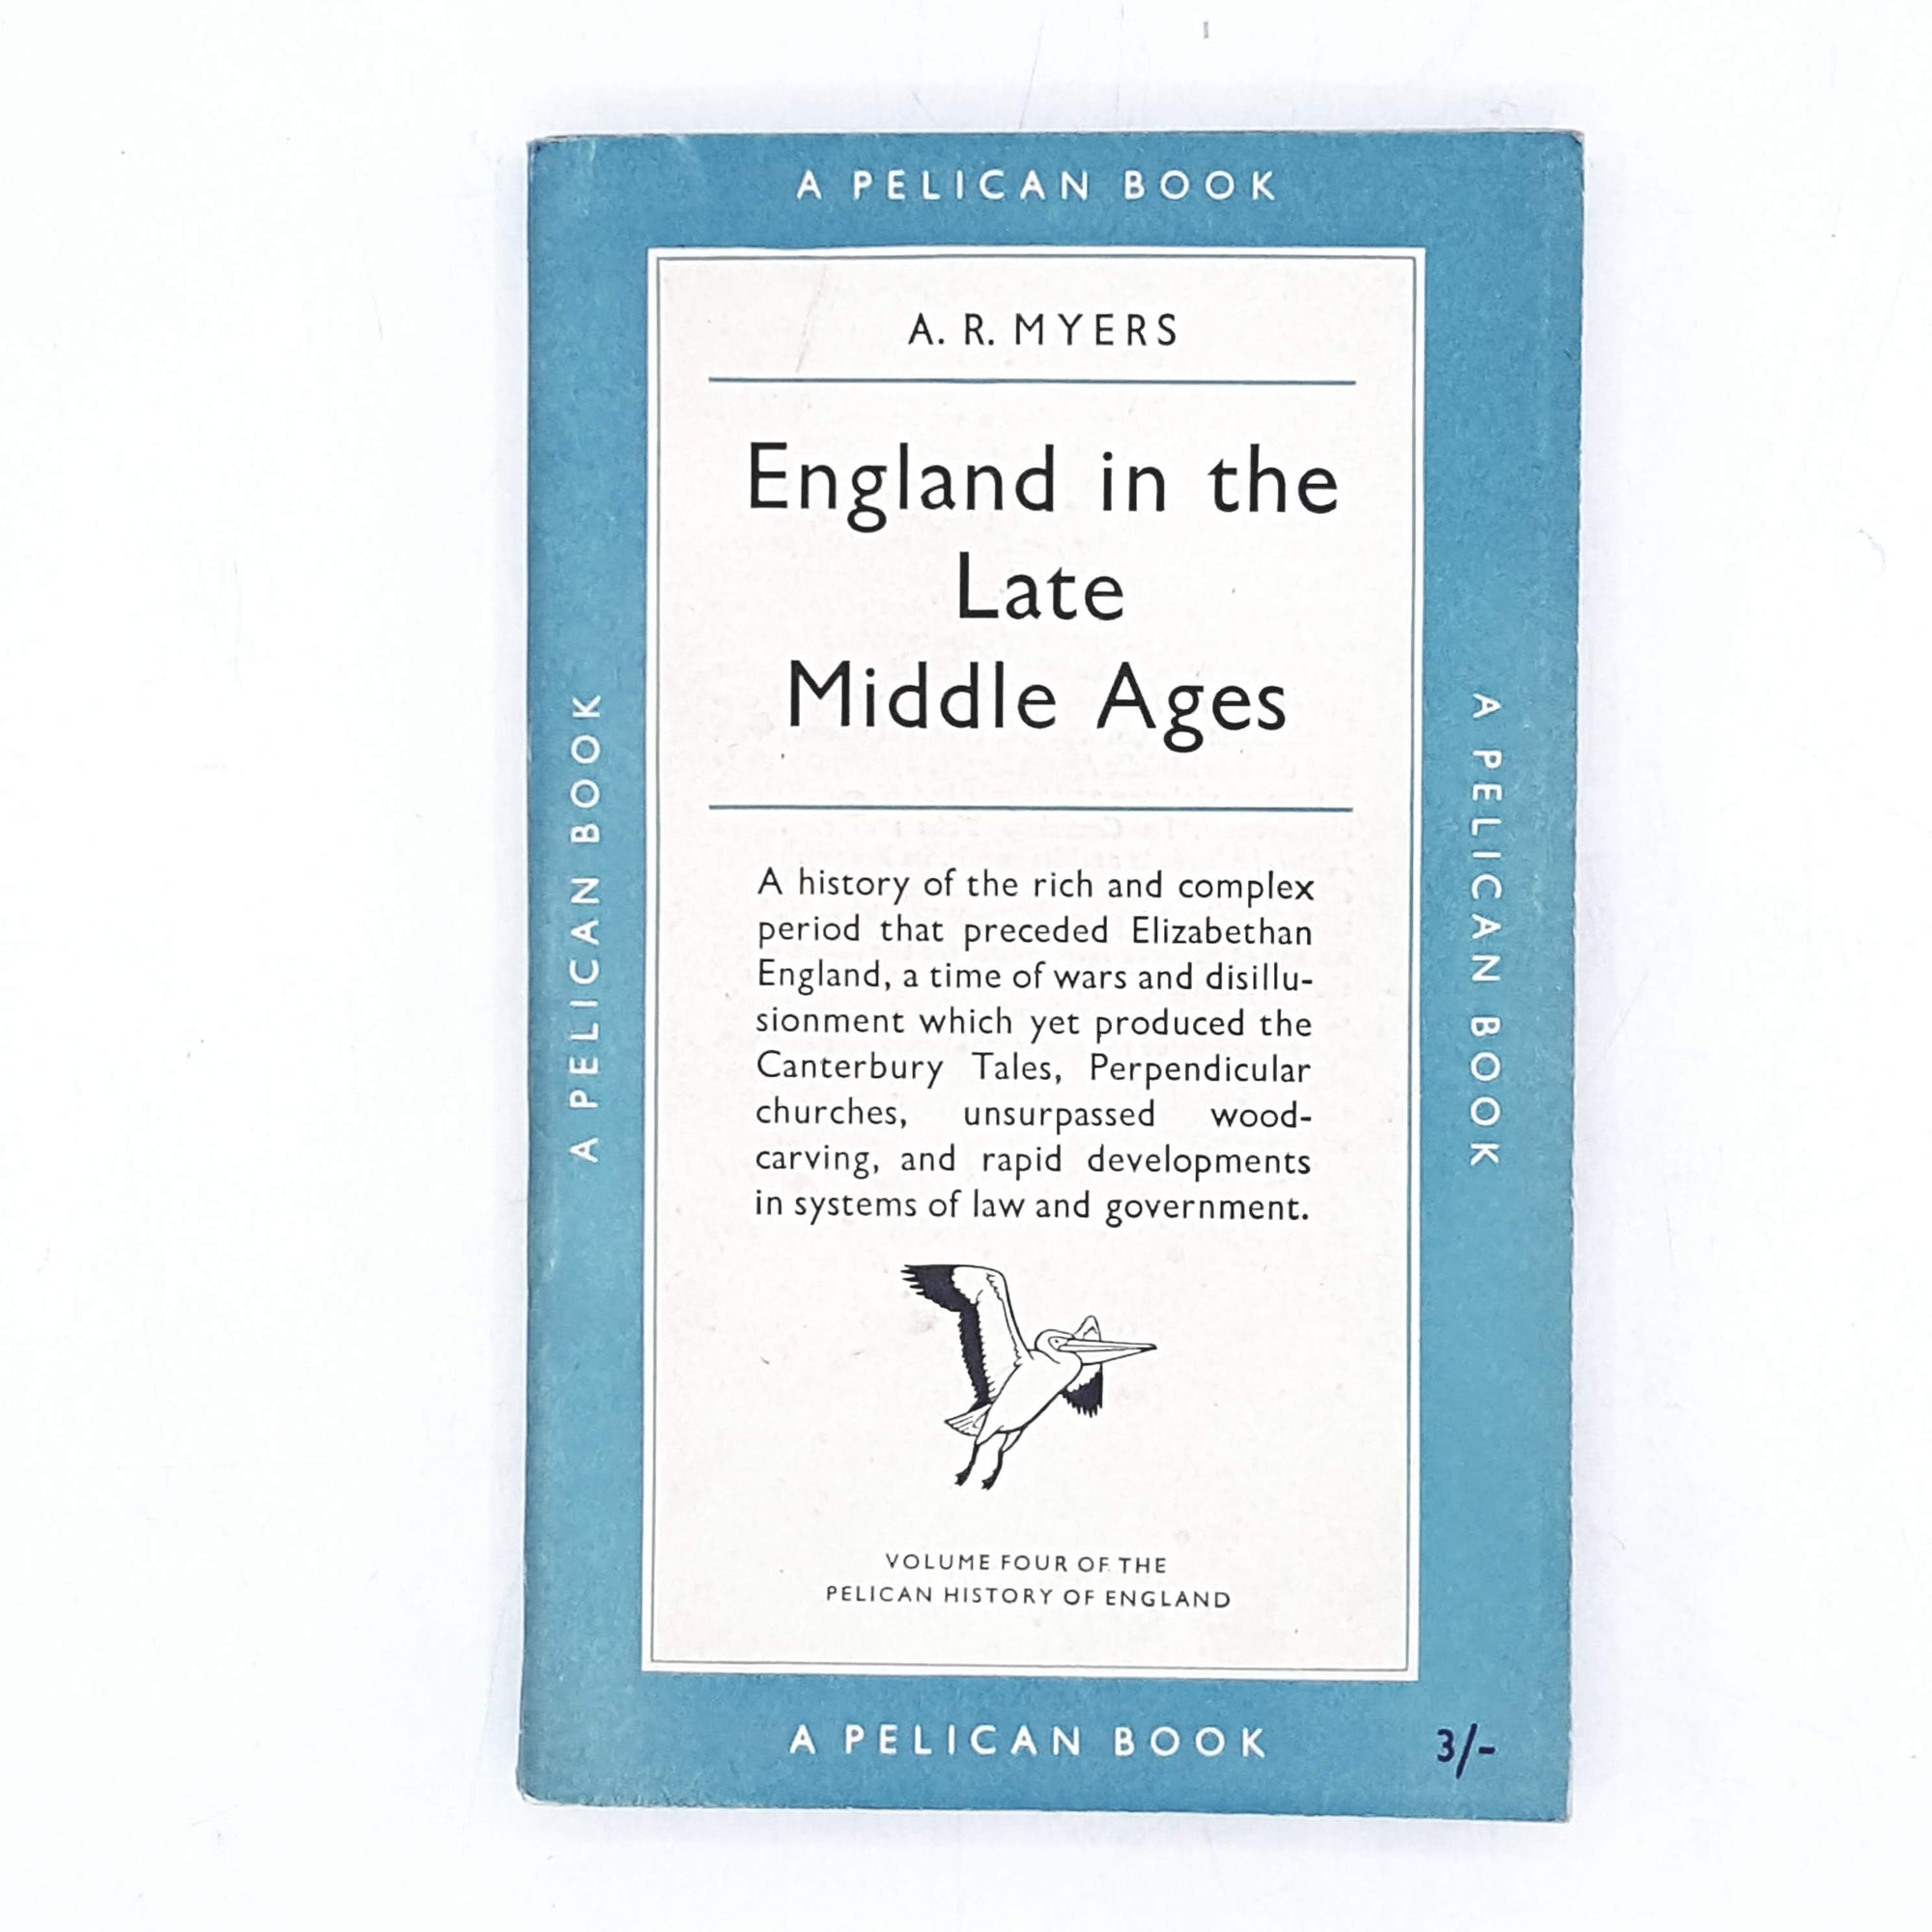 Vintage Pelican England in the Late Middle Ages by A. R. Myers 1952